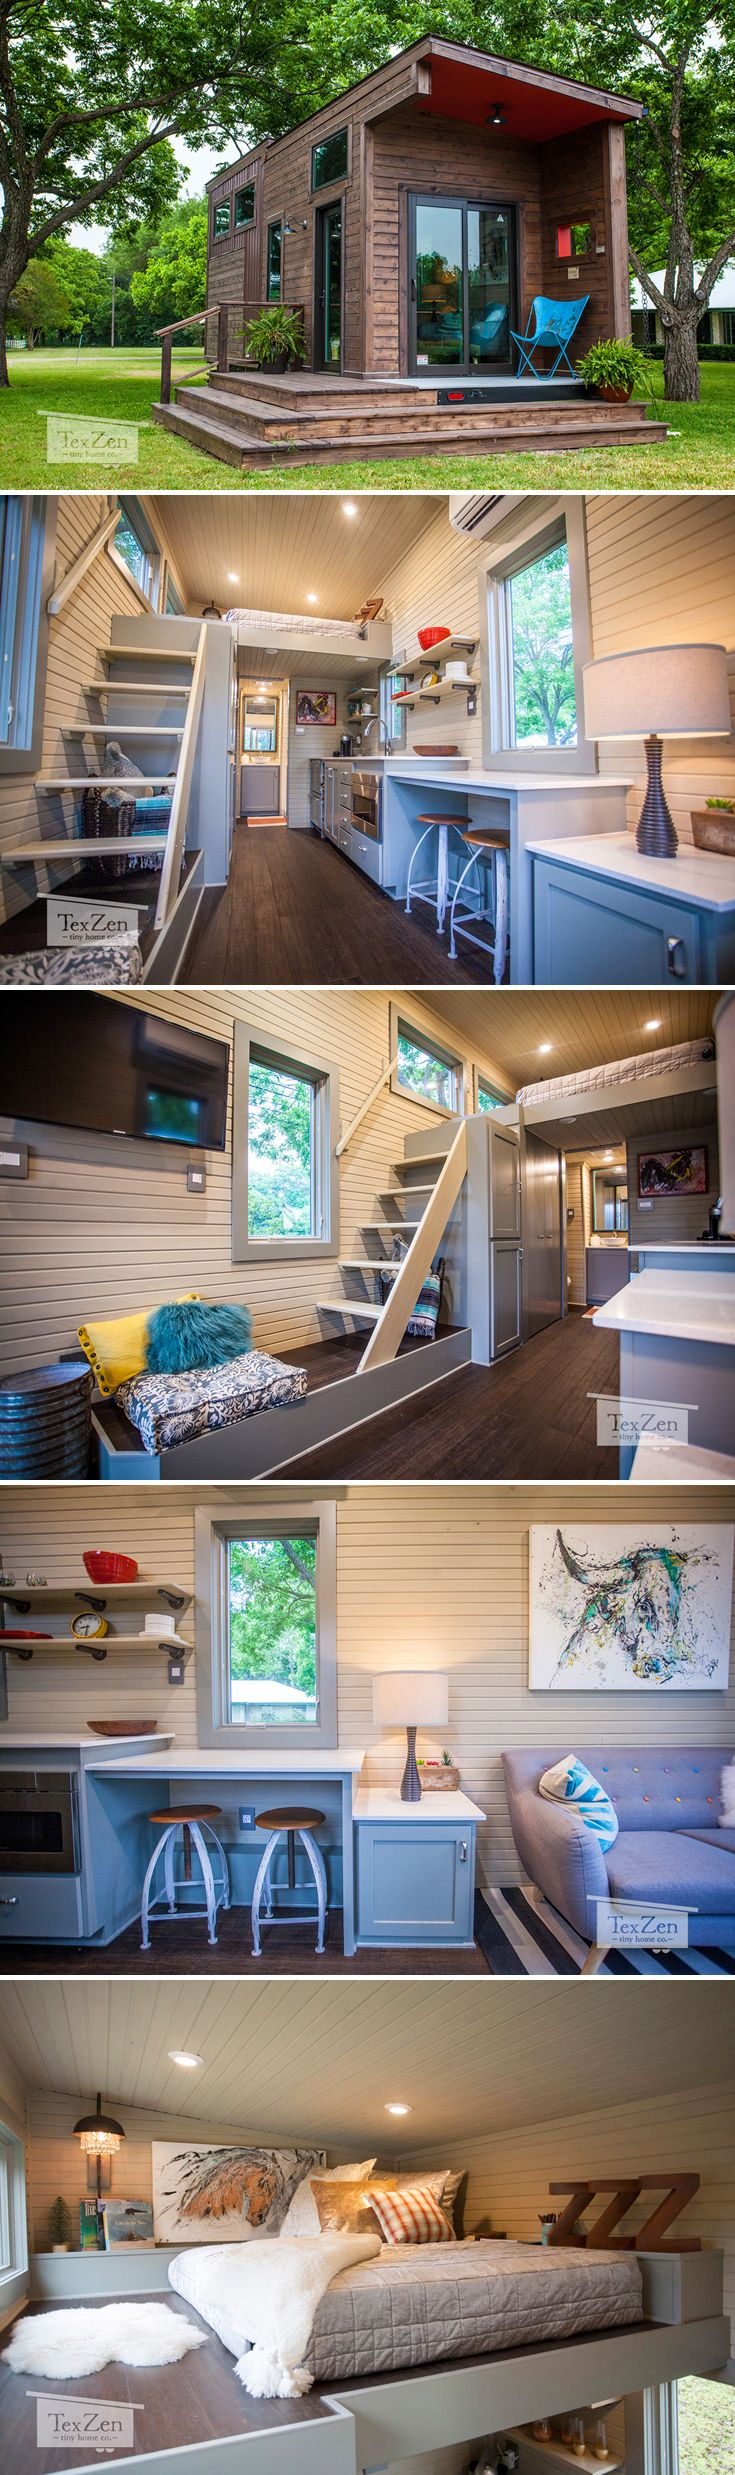 From Austin Texas Based Texzen Tiny Home Co Is The Single Loft House Rustic Modern Has A Covered Patio And Bright Ious Interior